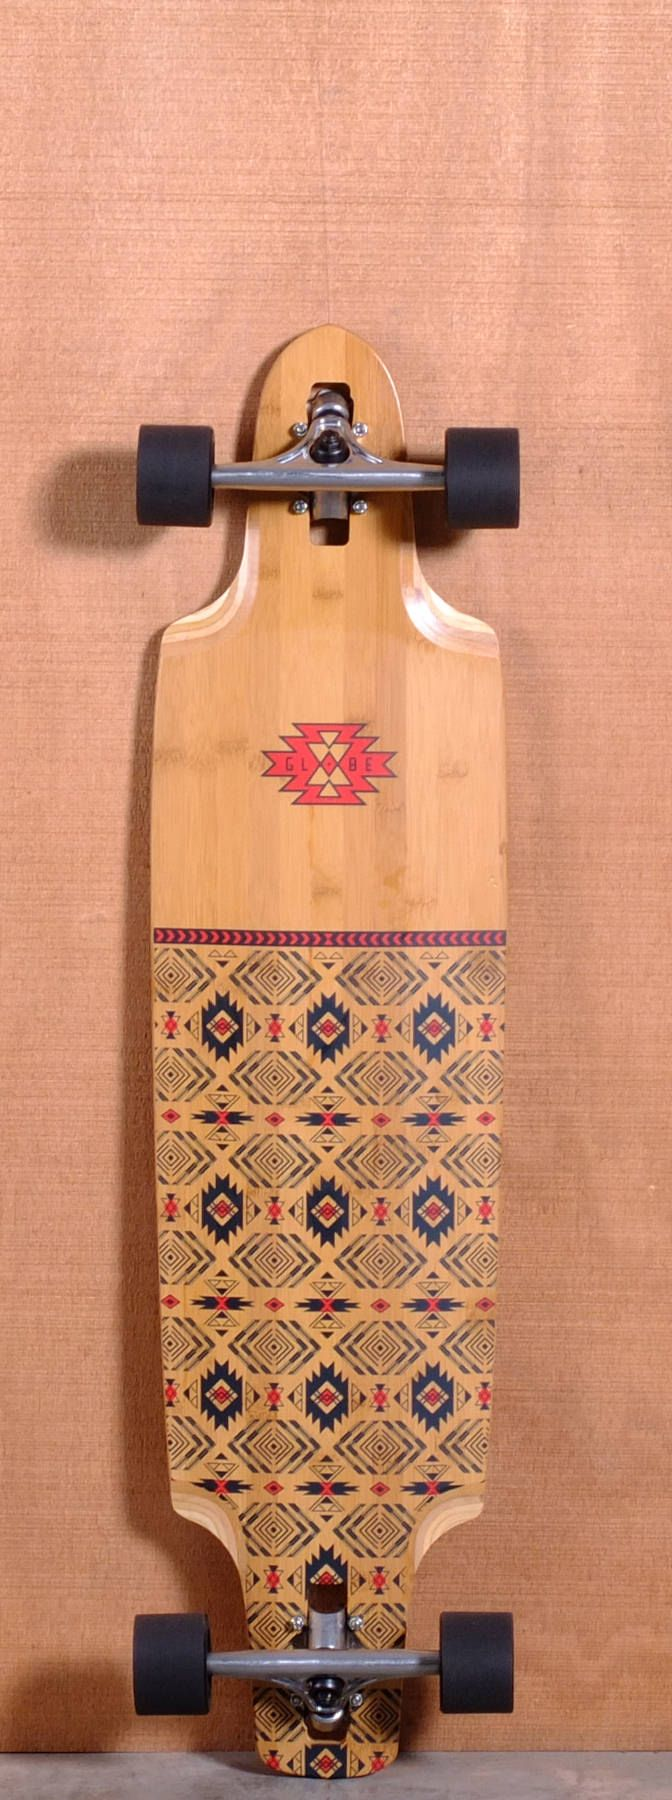 The Globe Spearpoint Bamboo Longboard Complete is designed for Carving, Freeride and Cruising. Ships fully assembled and ready to skate!